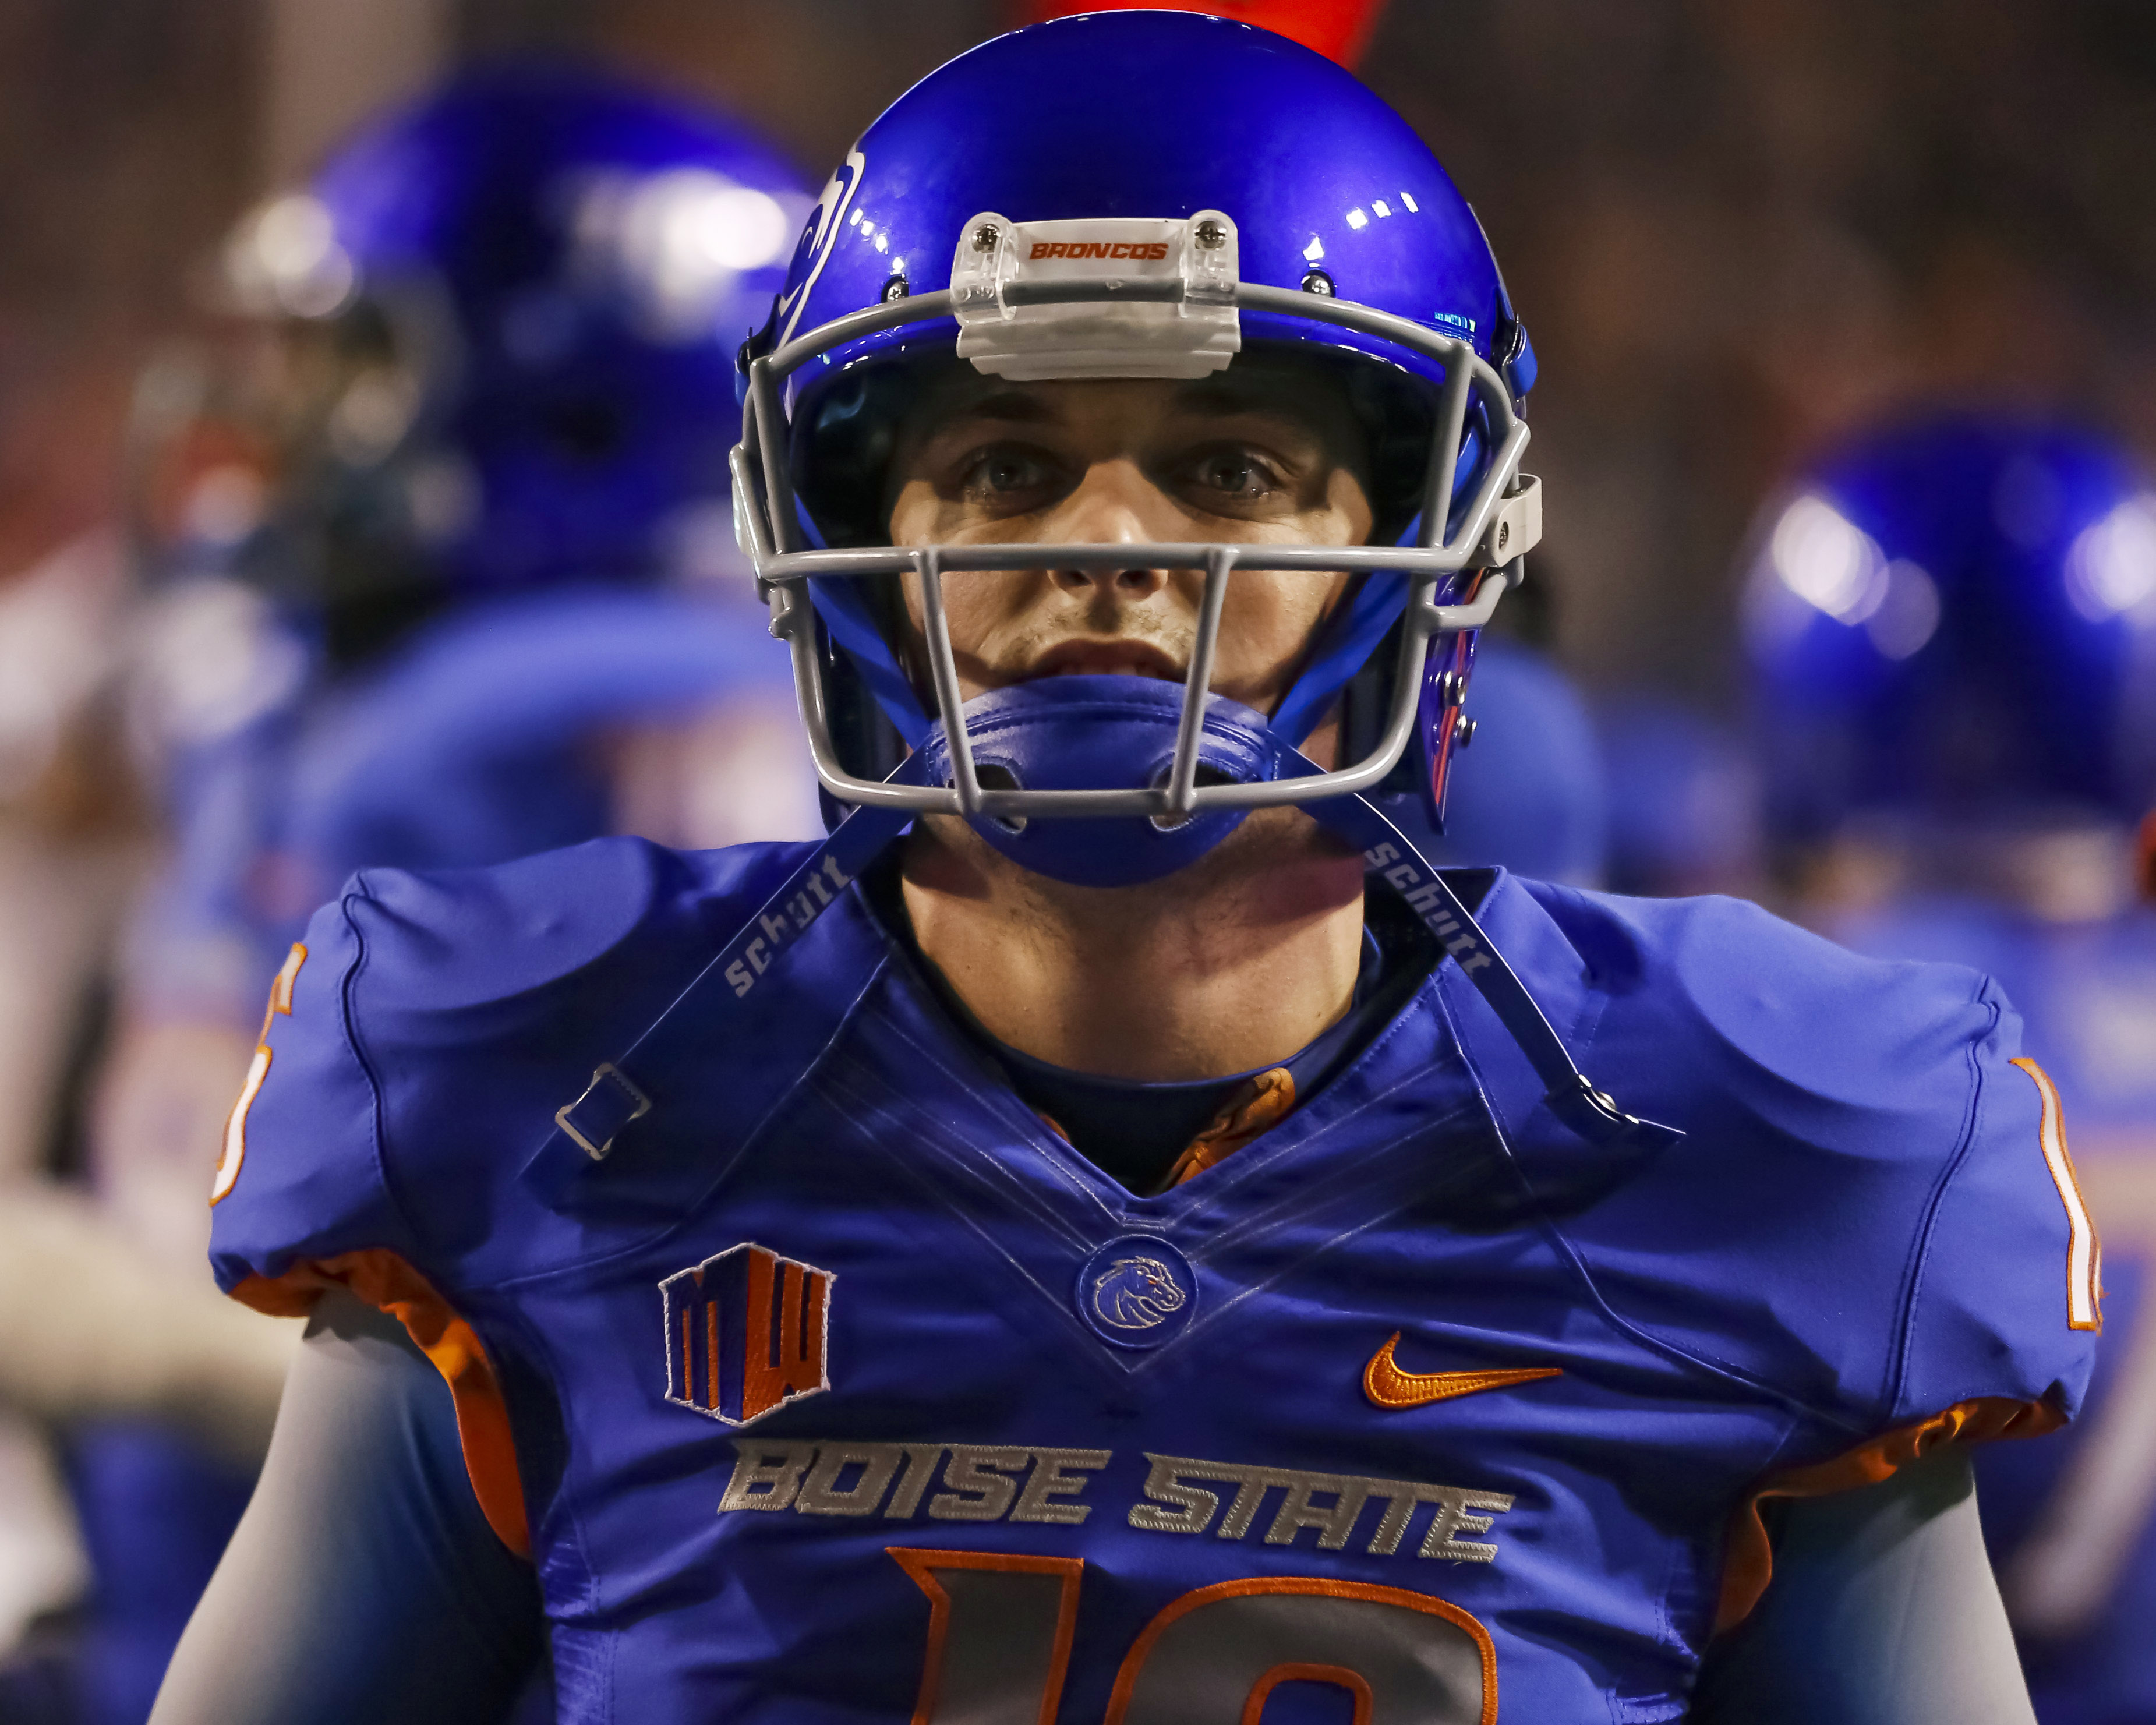 Boise State quarterback speaks out on suspension